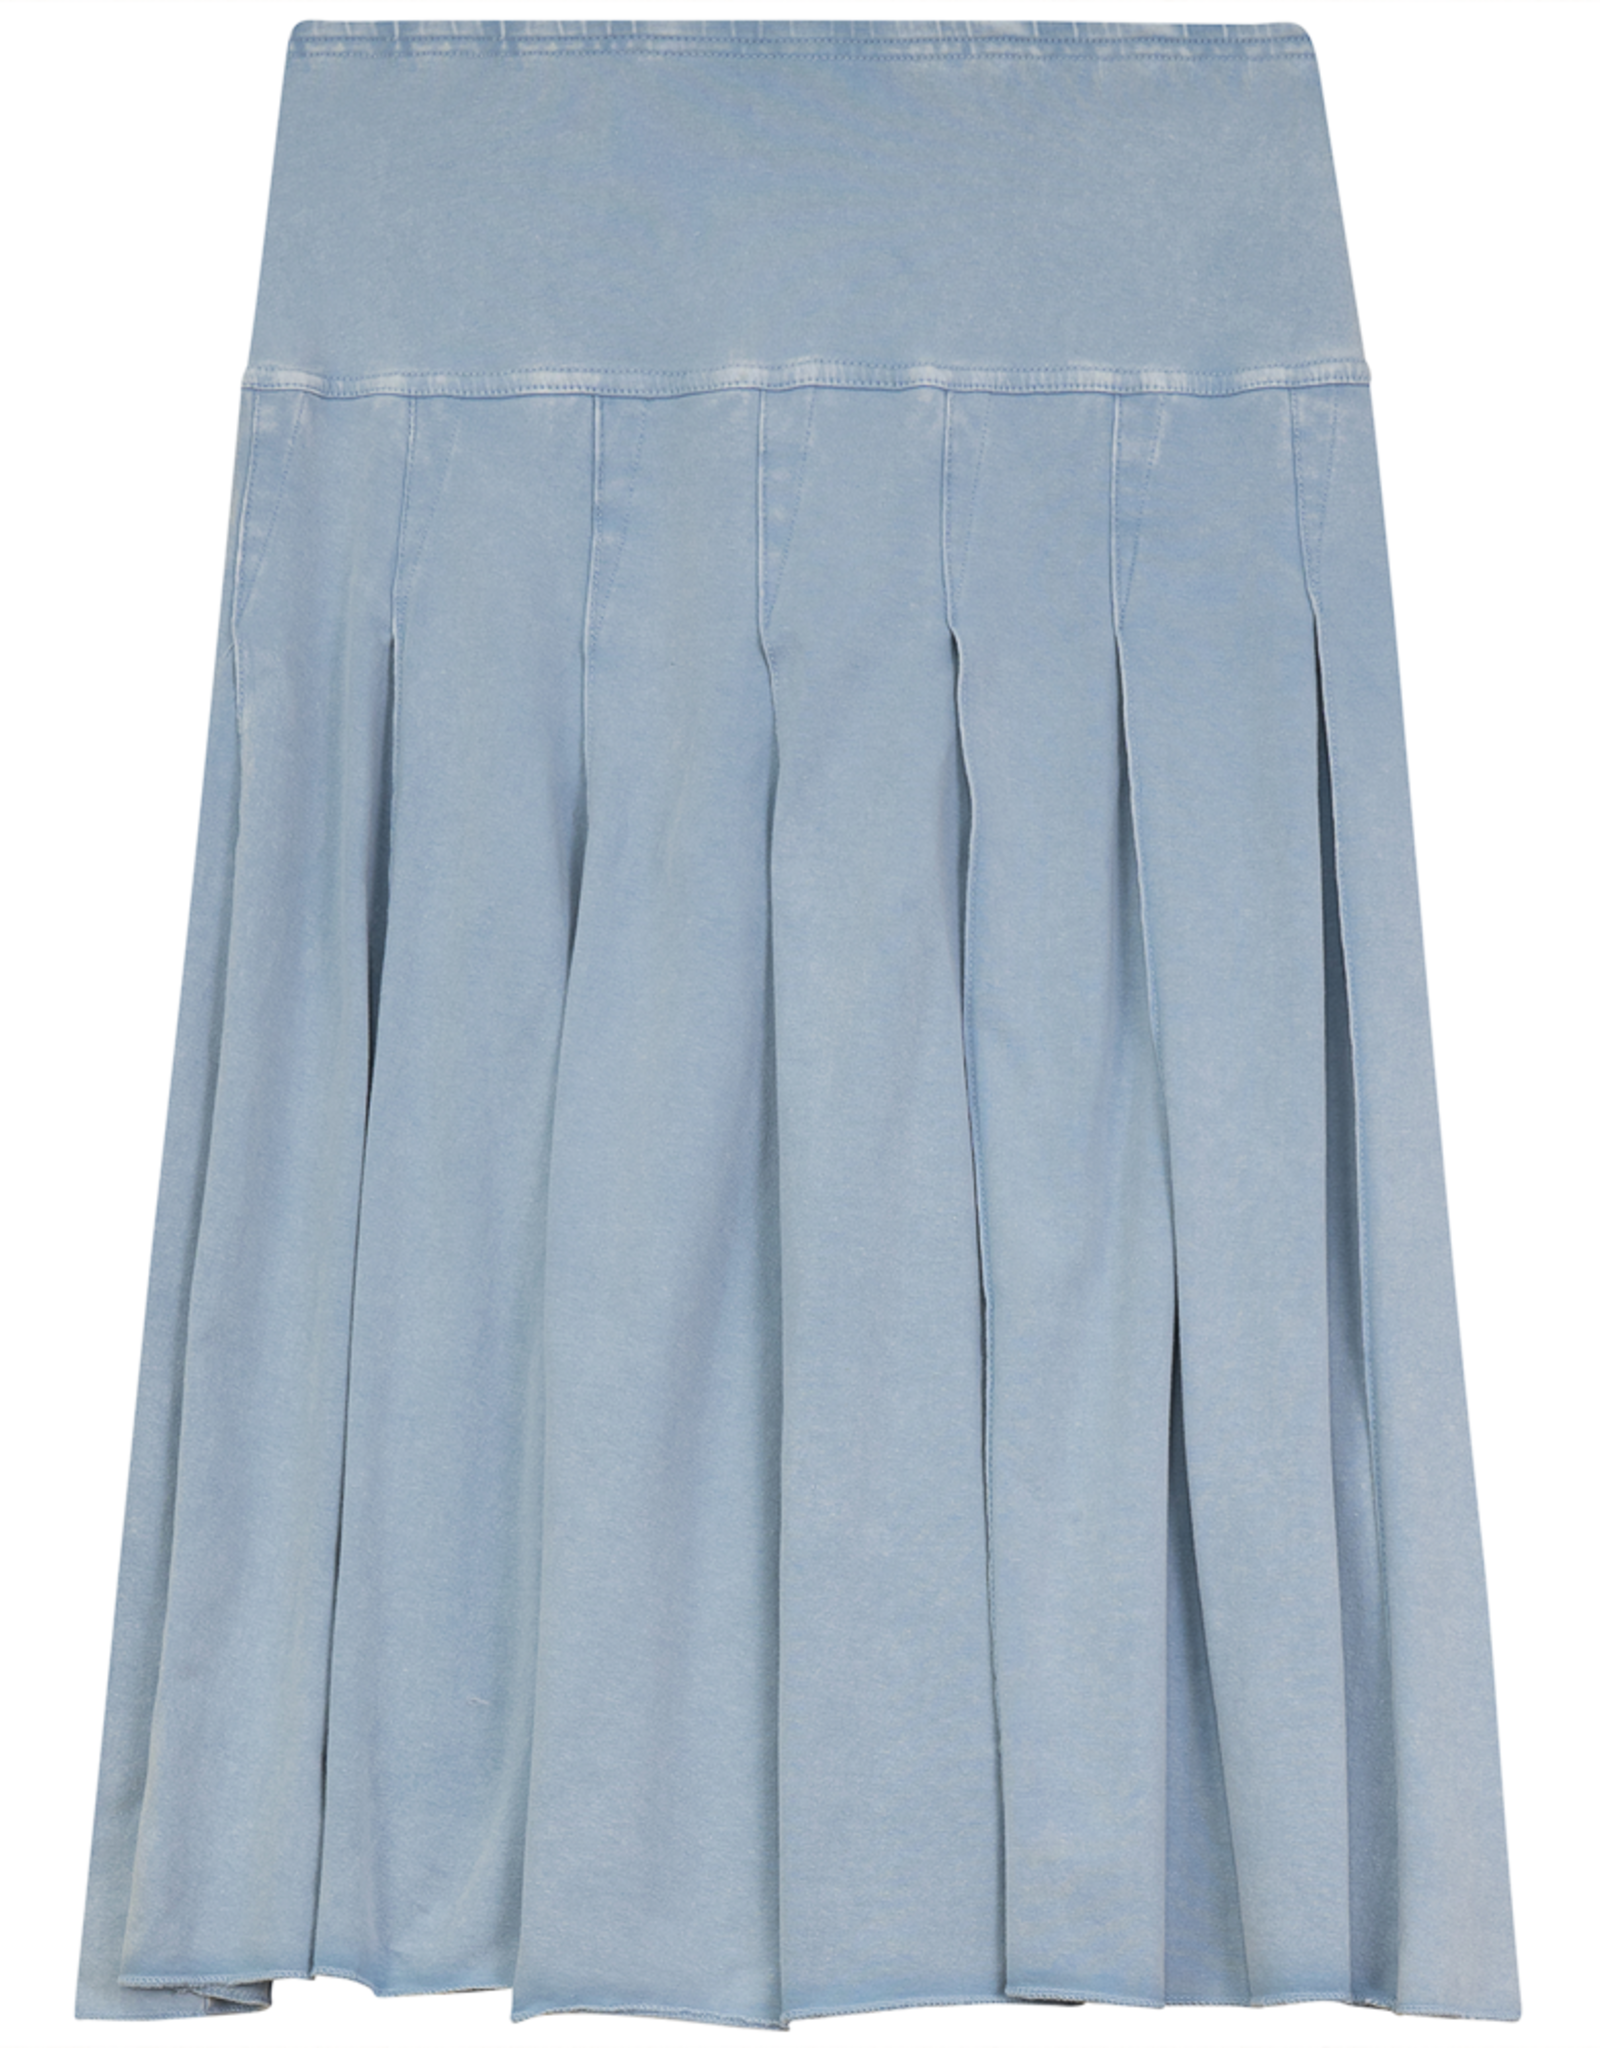 FIVE STAR Five Star Pleated Cotton Skirt